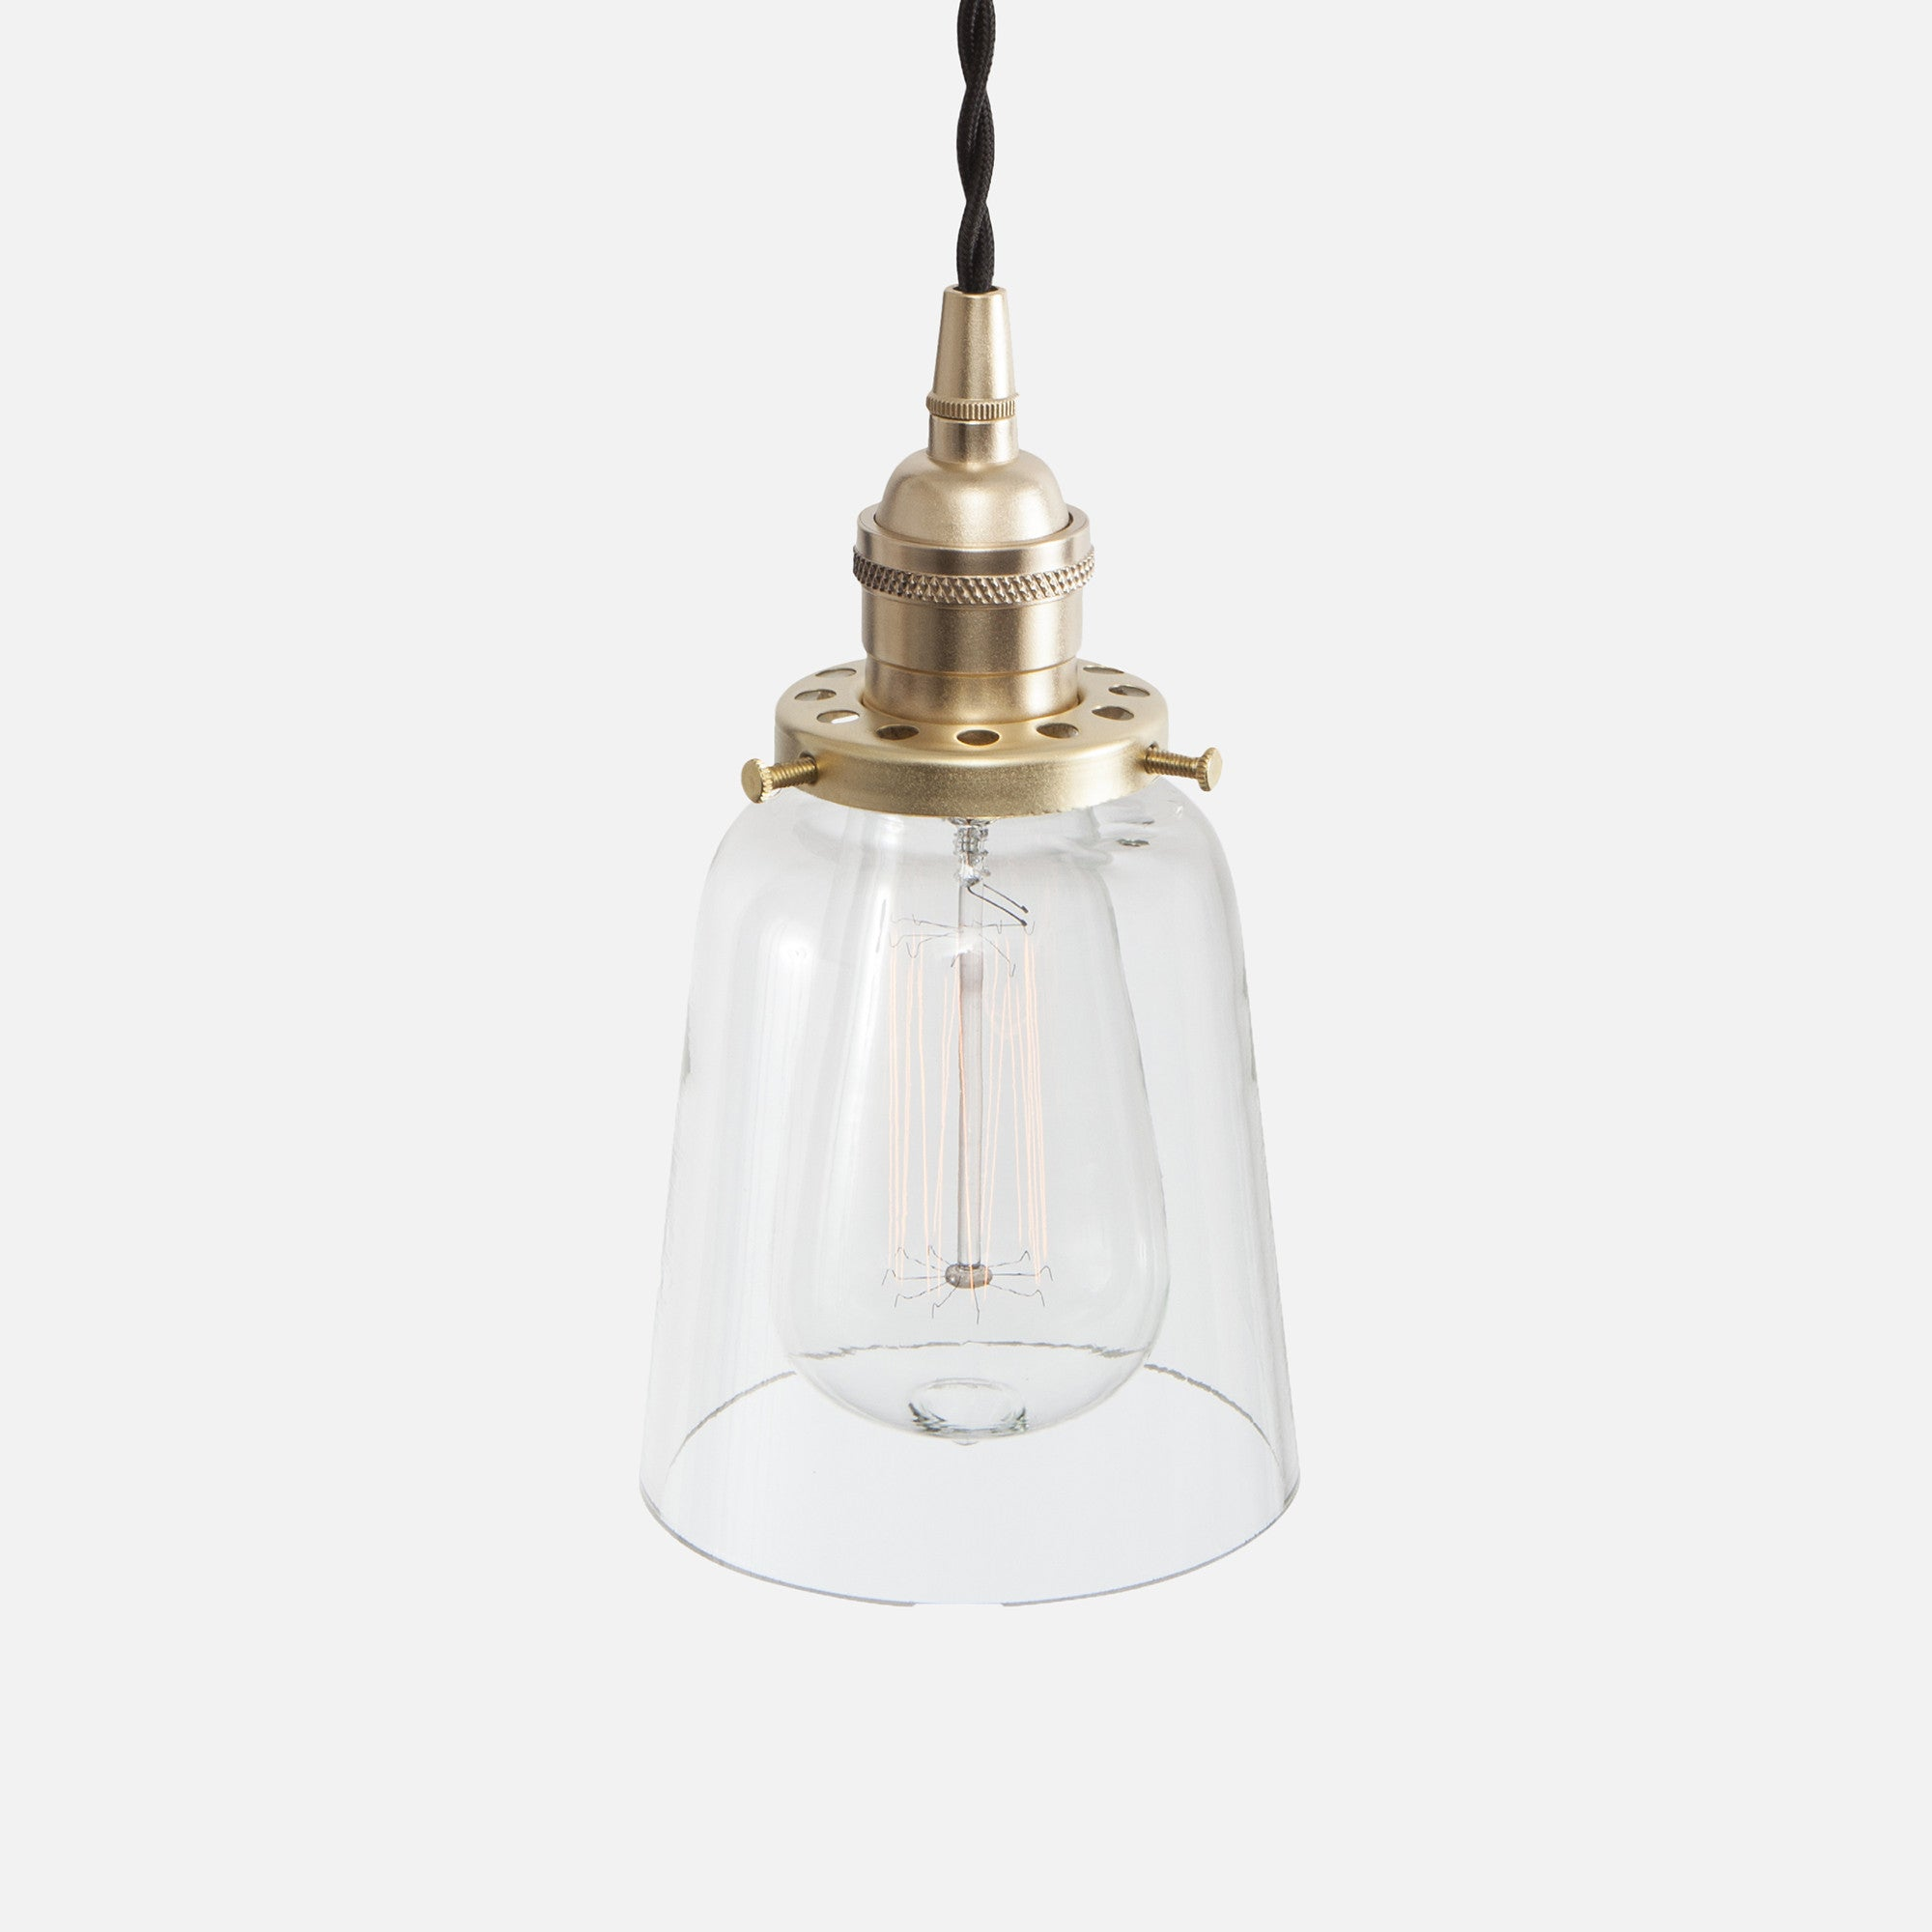 Vintage Socket Pendant Light - Clear Glass Straight Bell Shade - Raw Brass Patina : bell lighting products - azcodes.com